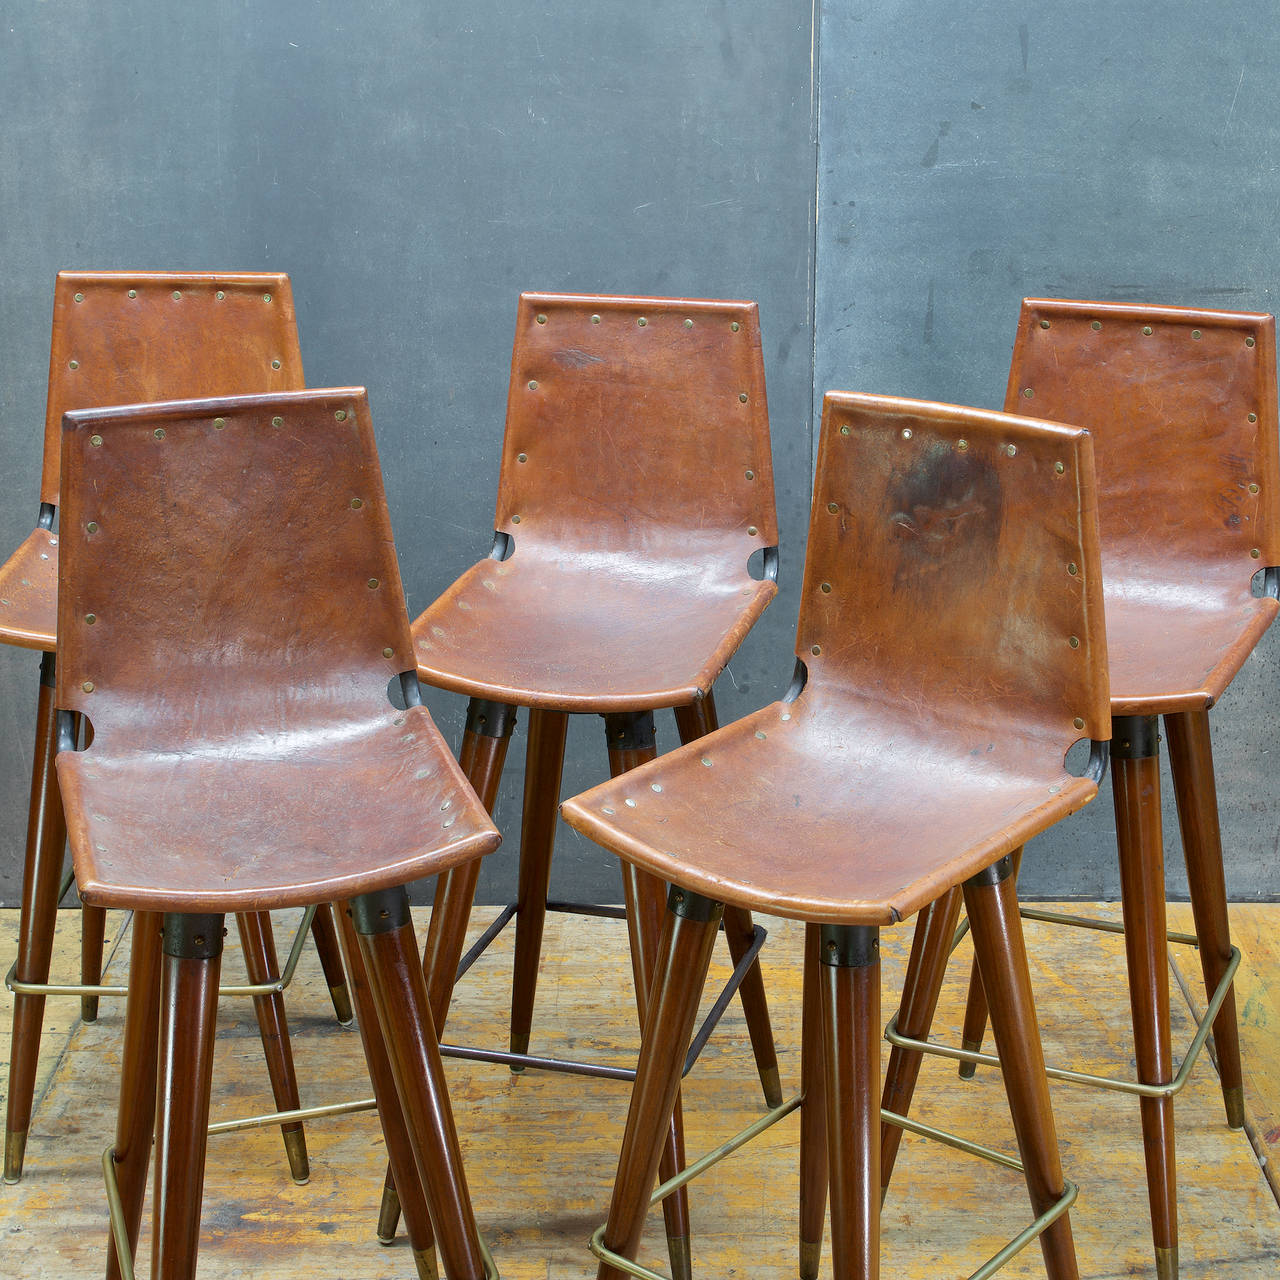 1960s Midcentury Leather Sling Iron Bar Stools At 1stdibs